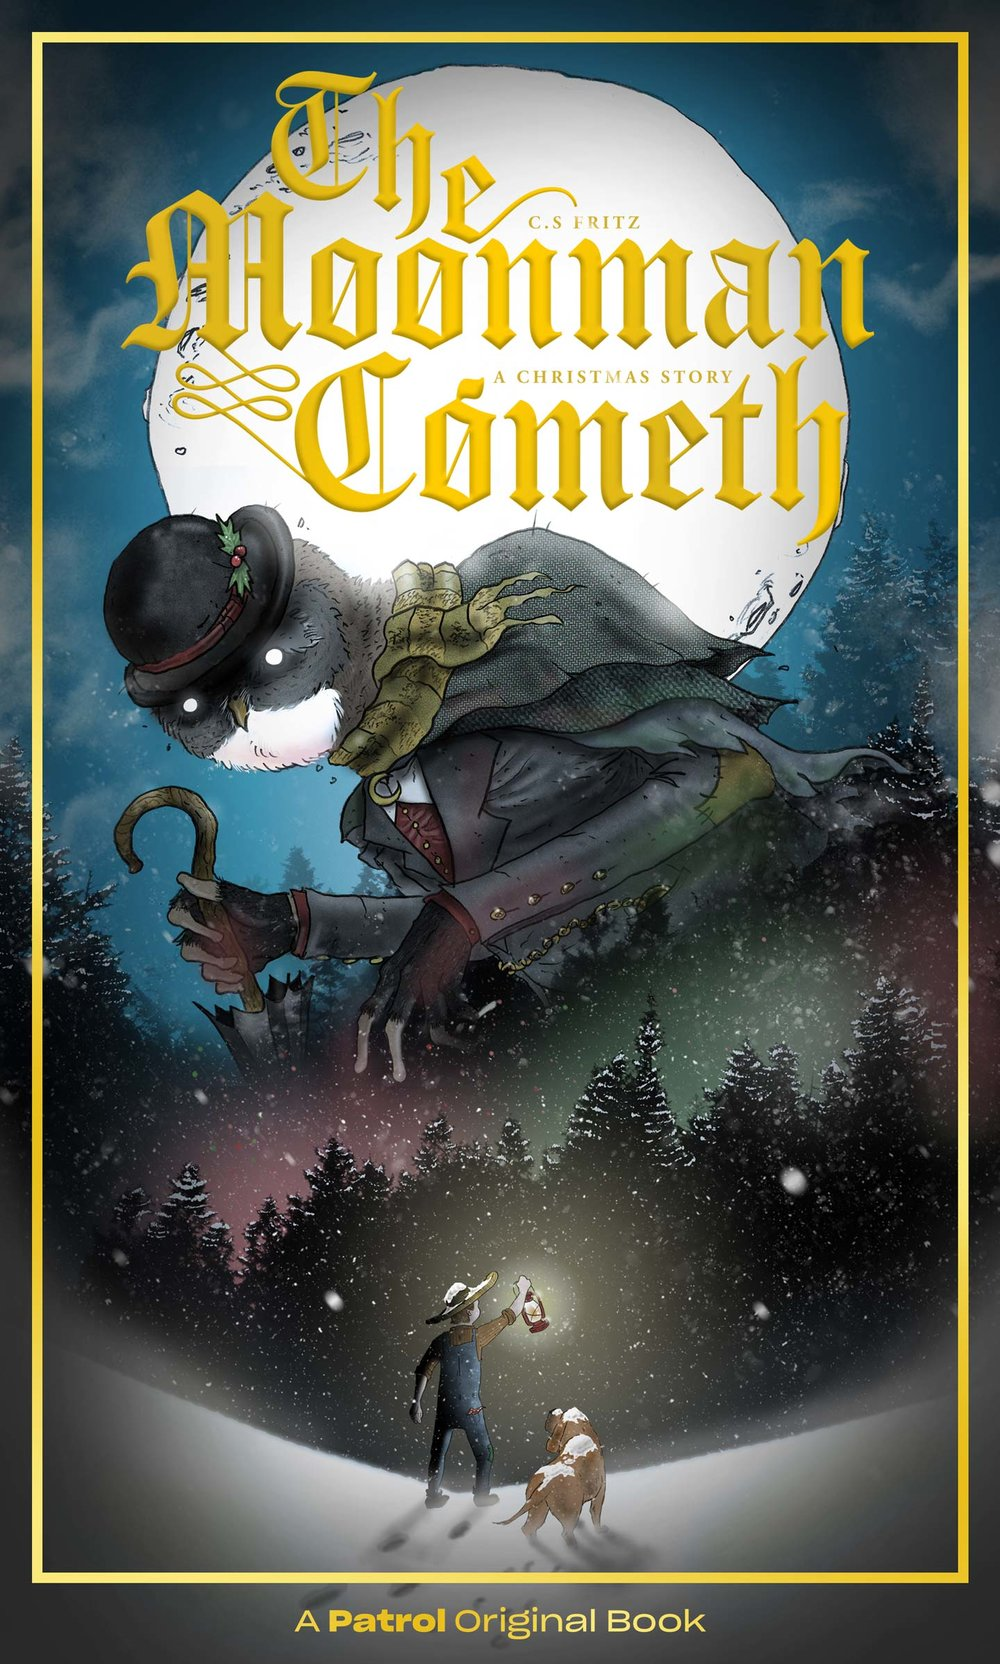 Moonment-Cometh_cover_final2.jpg